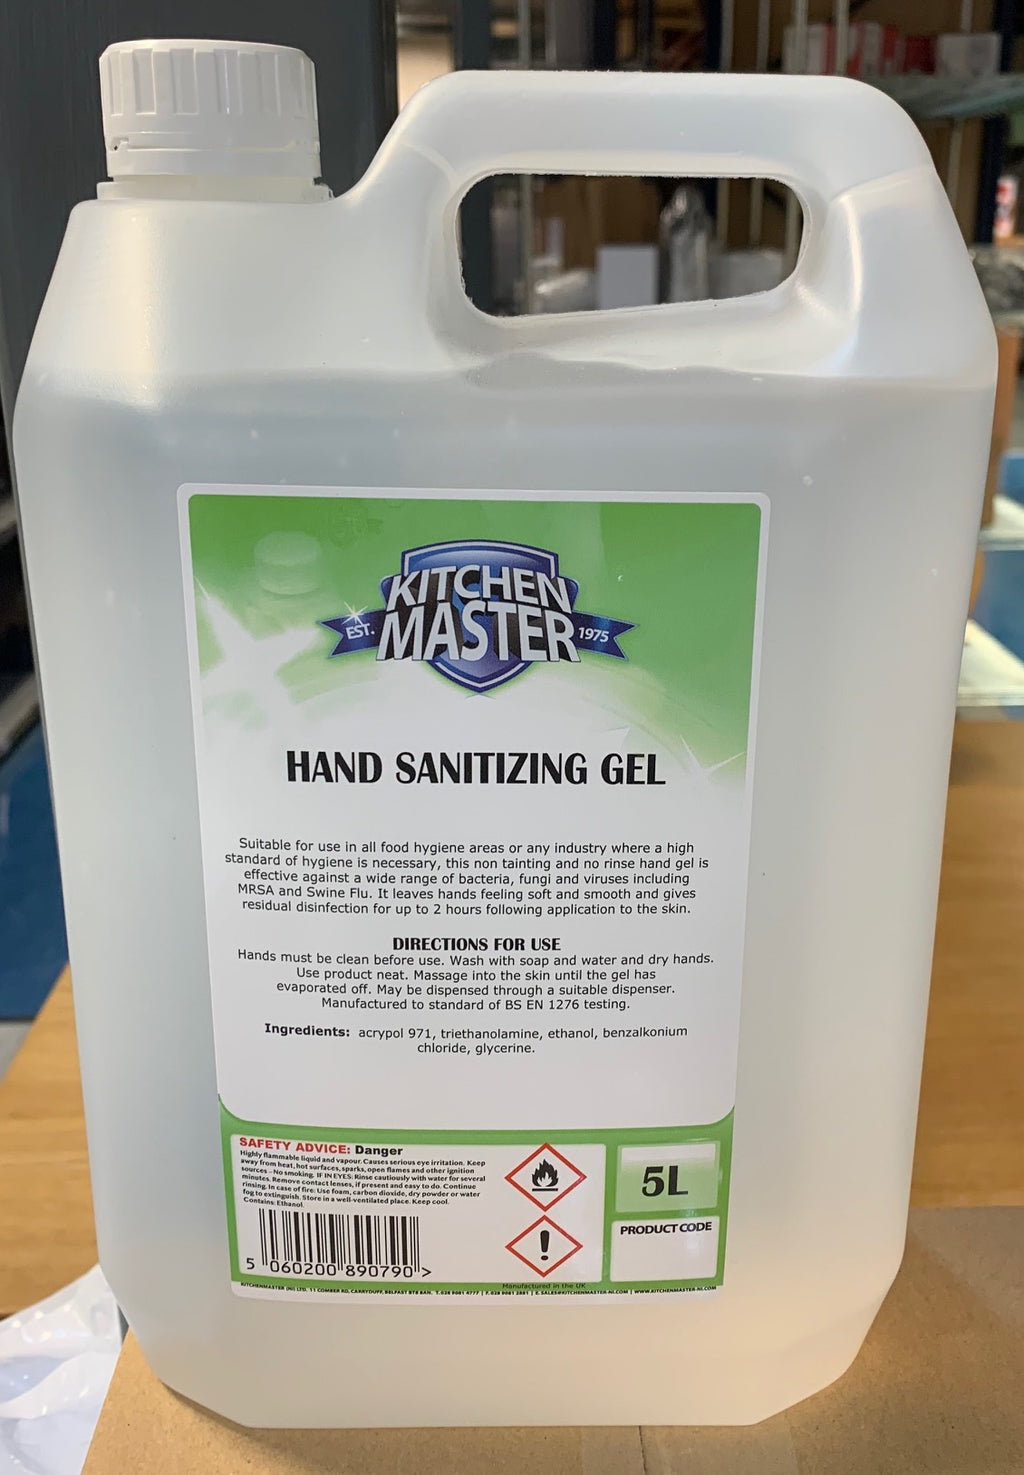 5 LT Hand sanitizing gel